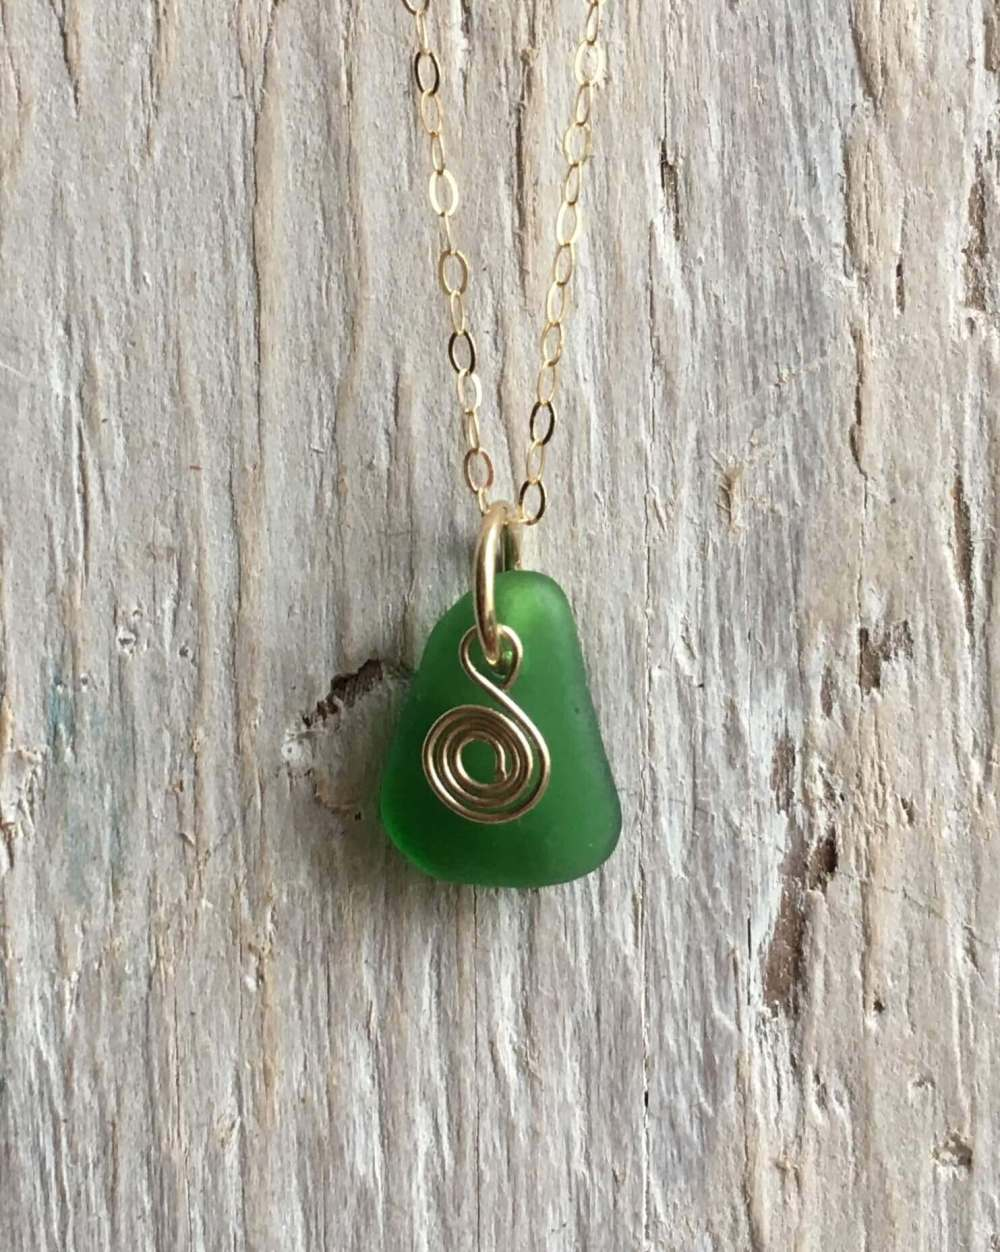 green sea glass with recycled gold spiral